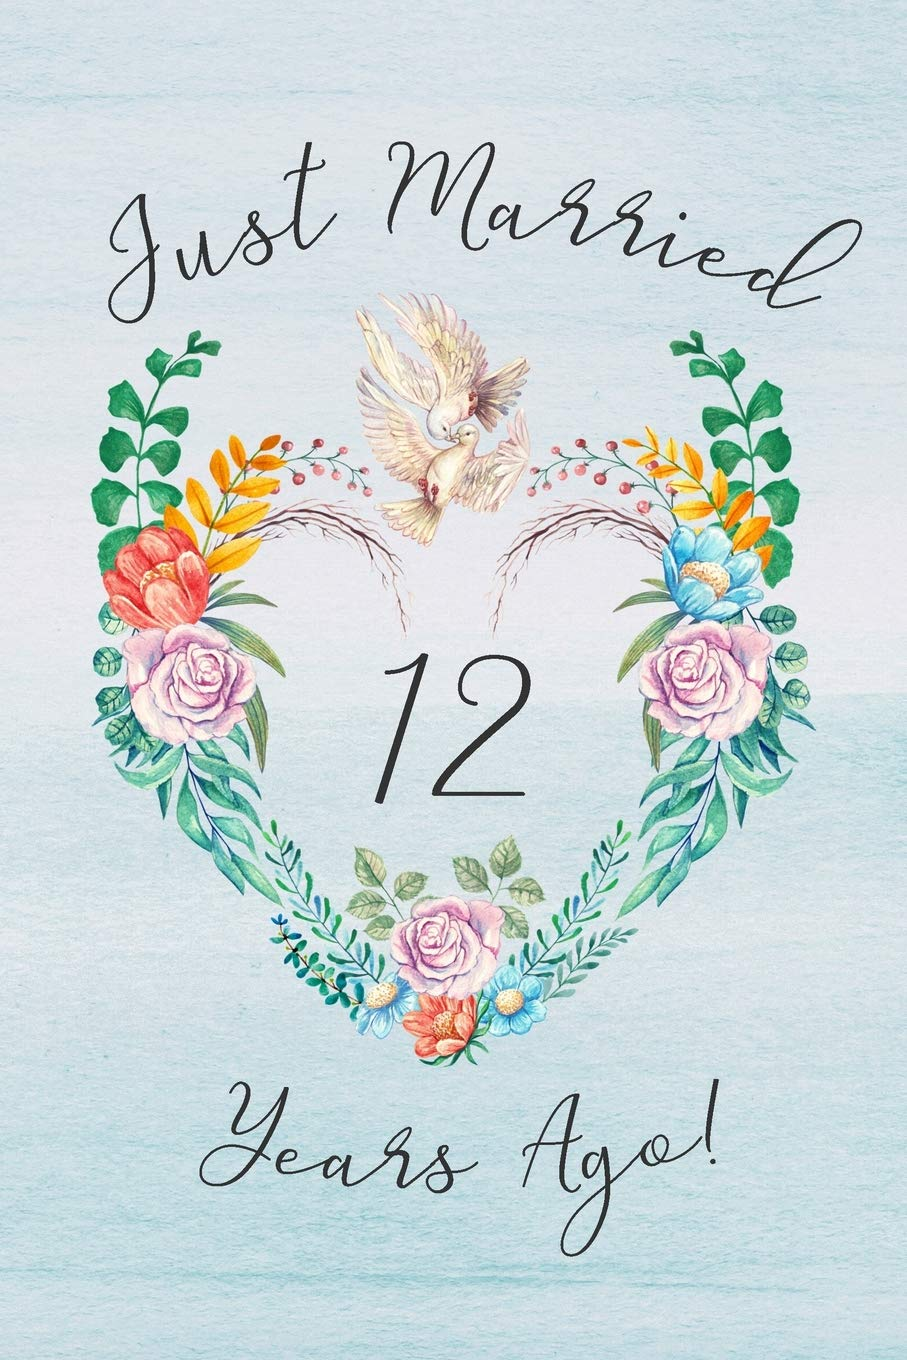 12th Anniversary Journal Lined Journal Notebook 12th Anniversary Gifts For Her And Him Romantic 12 Year Wedding Anniversary Celebration Gift Card Dove Theme Just Married 12 Years Ago Ruslove Shanley 9781075806551 Amazon Com Books